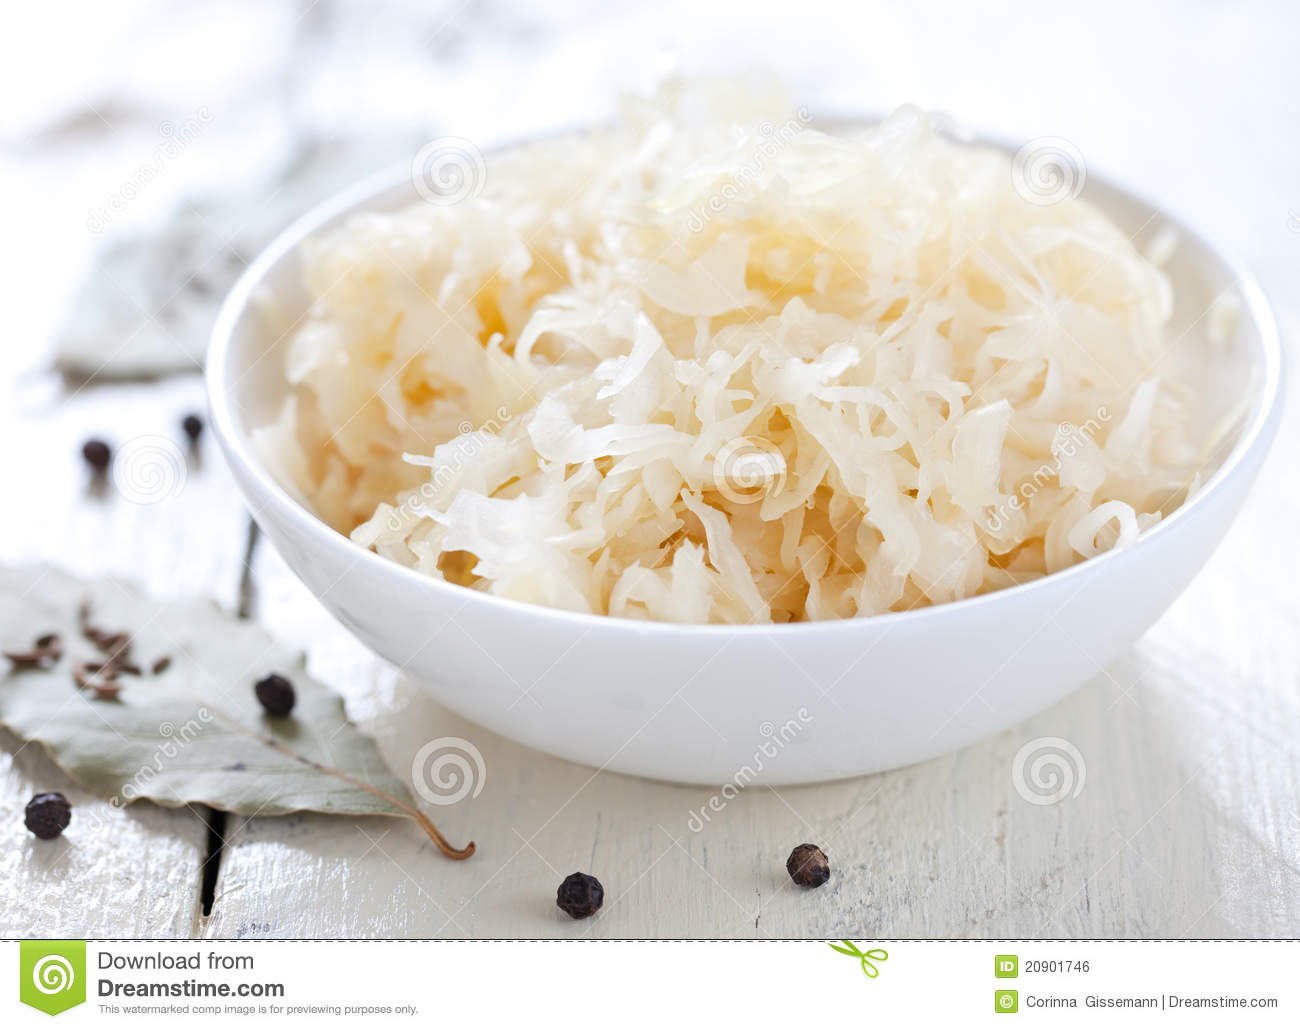 Sauerkraut Stock Photos, Images, & Pictures.